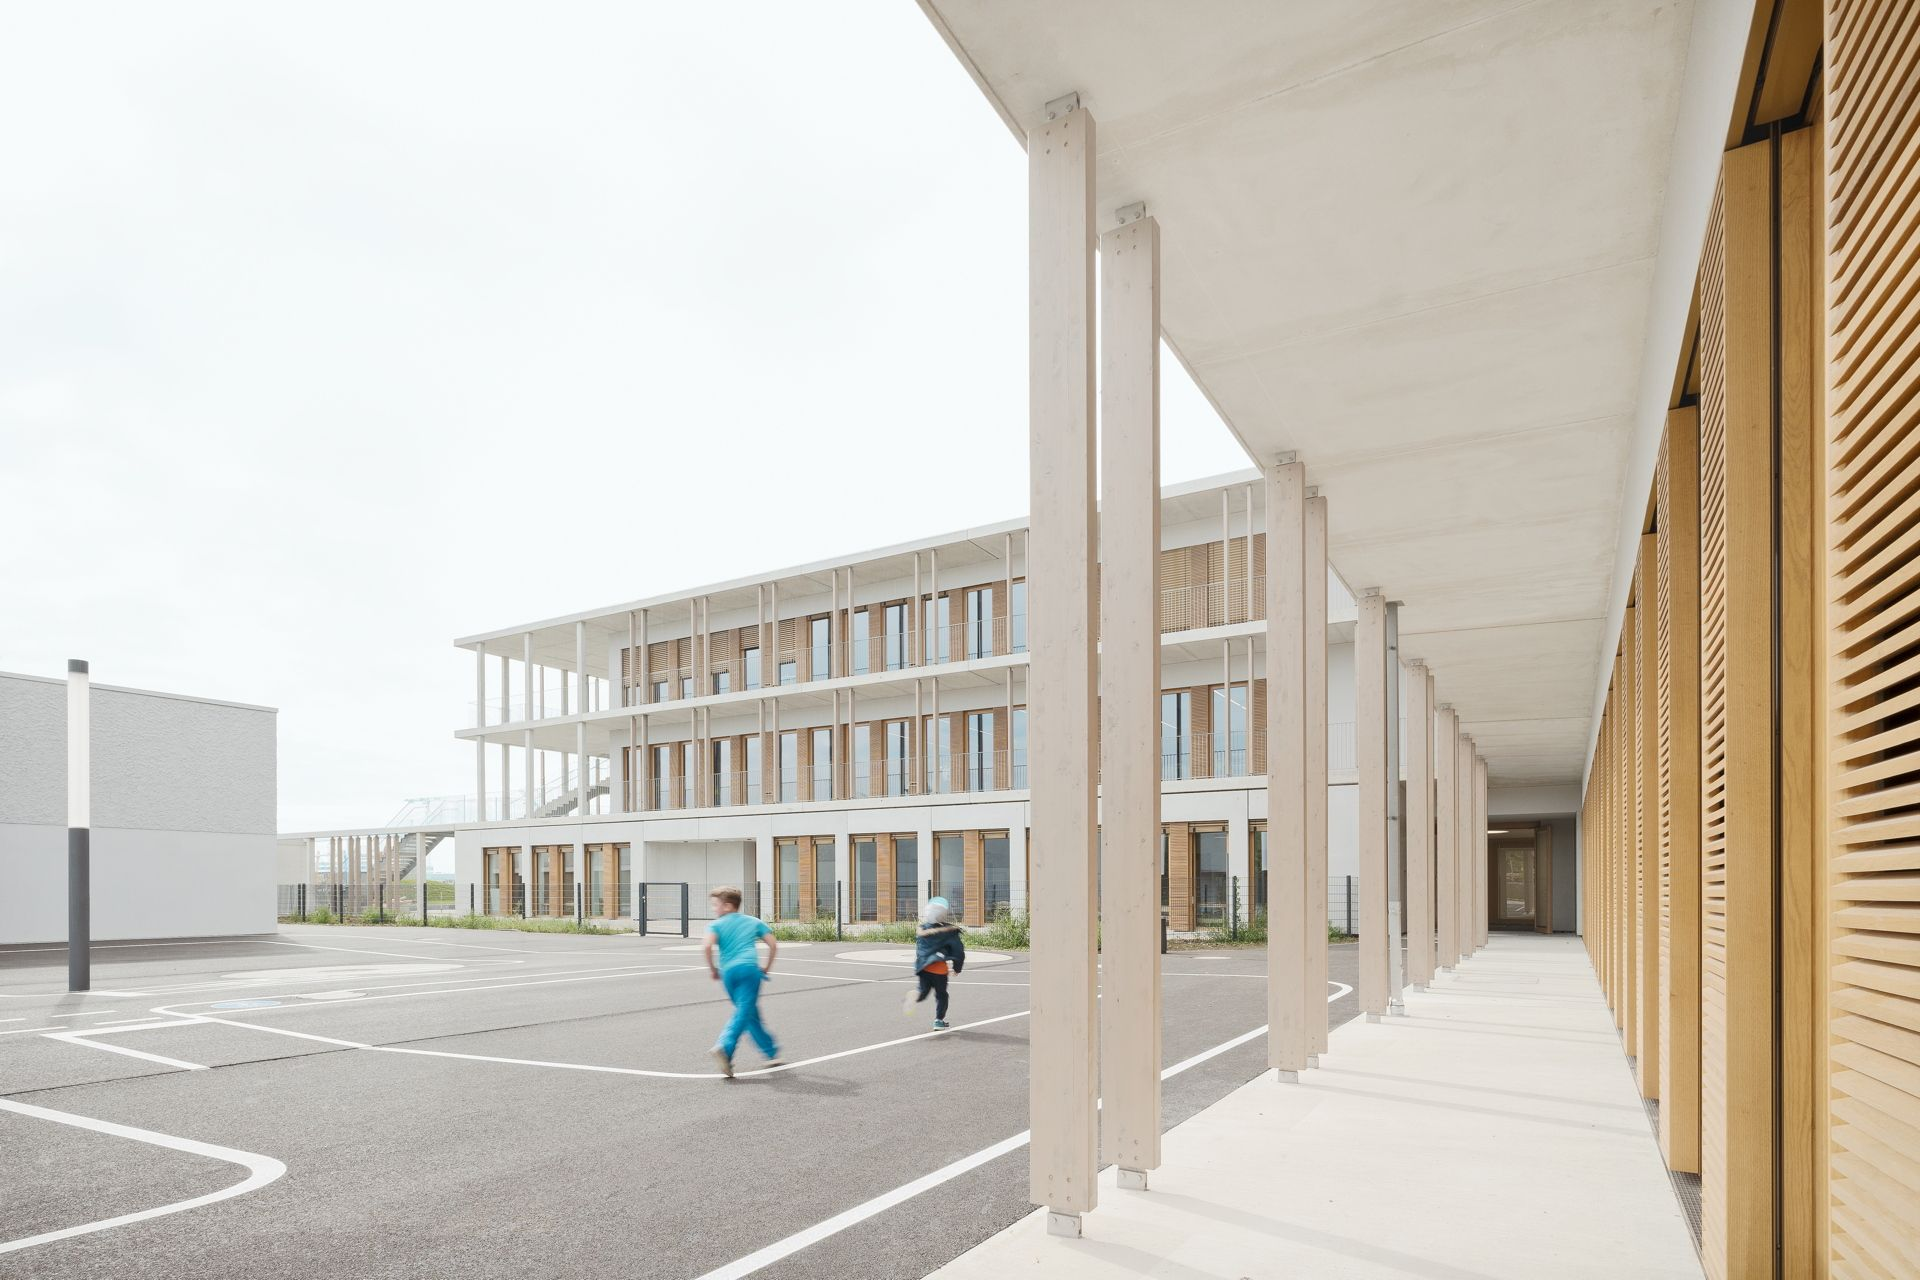 Winners And Commendations For The 2020 Architekturpreis Beton Germany Livegreenblog In 2020 School Architecture Primary School Modular Design